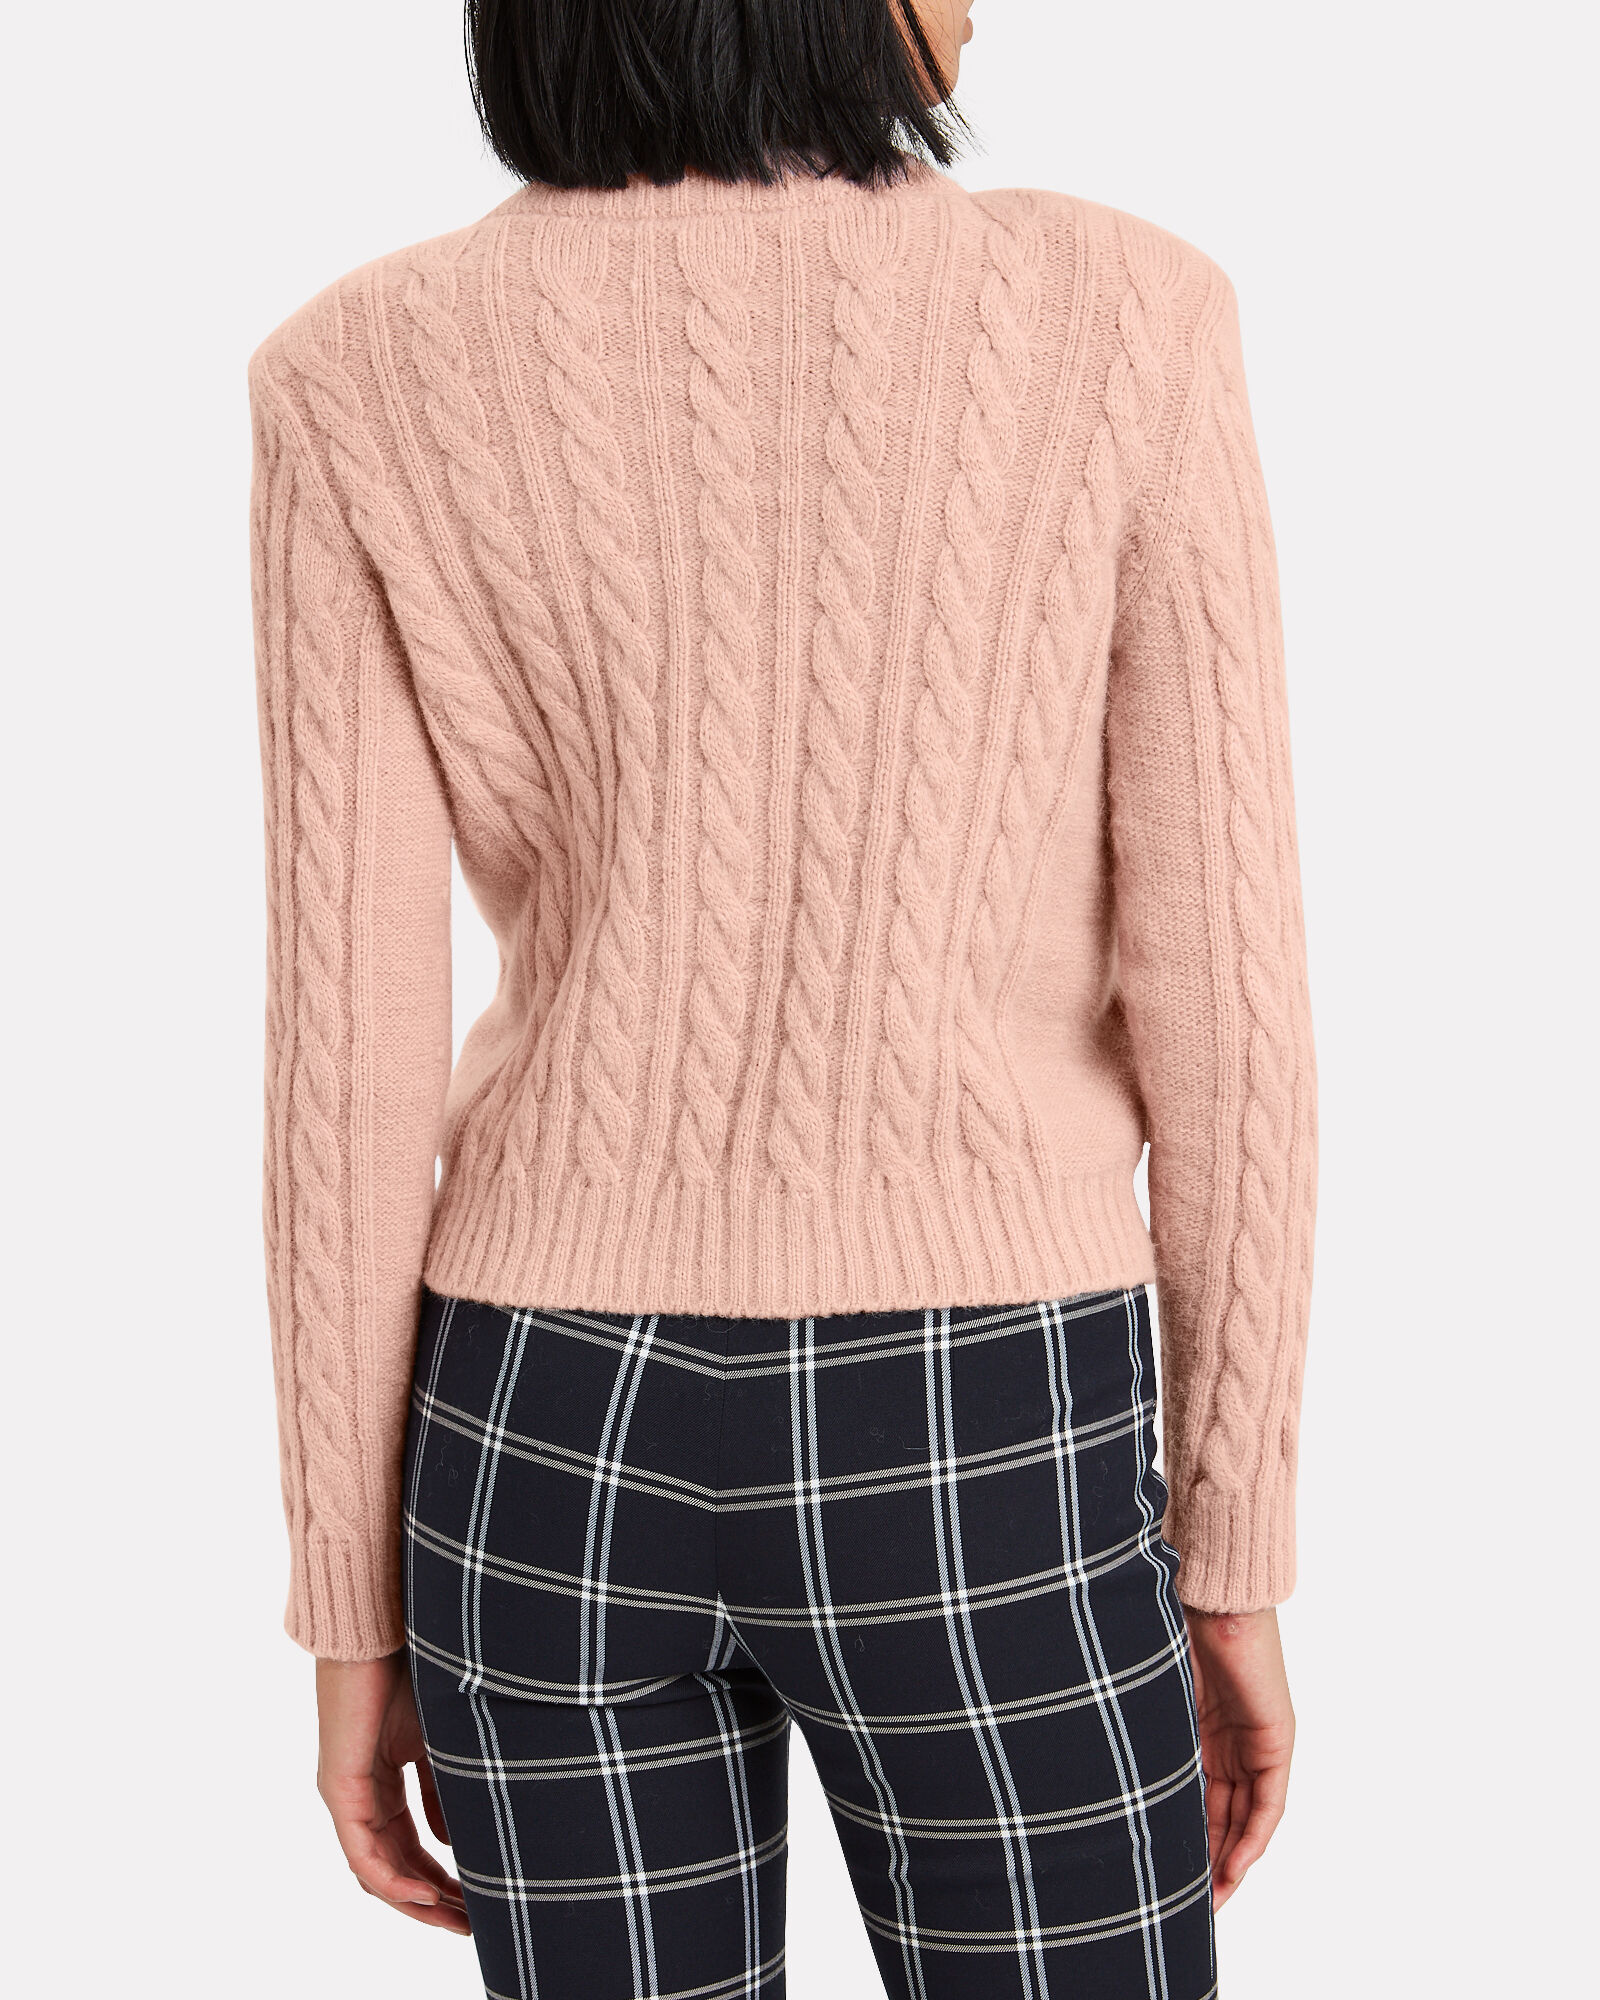 Crystal Embellished Cable Knit Sweater, PINK, hi-res